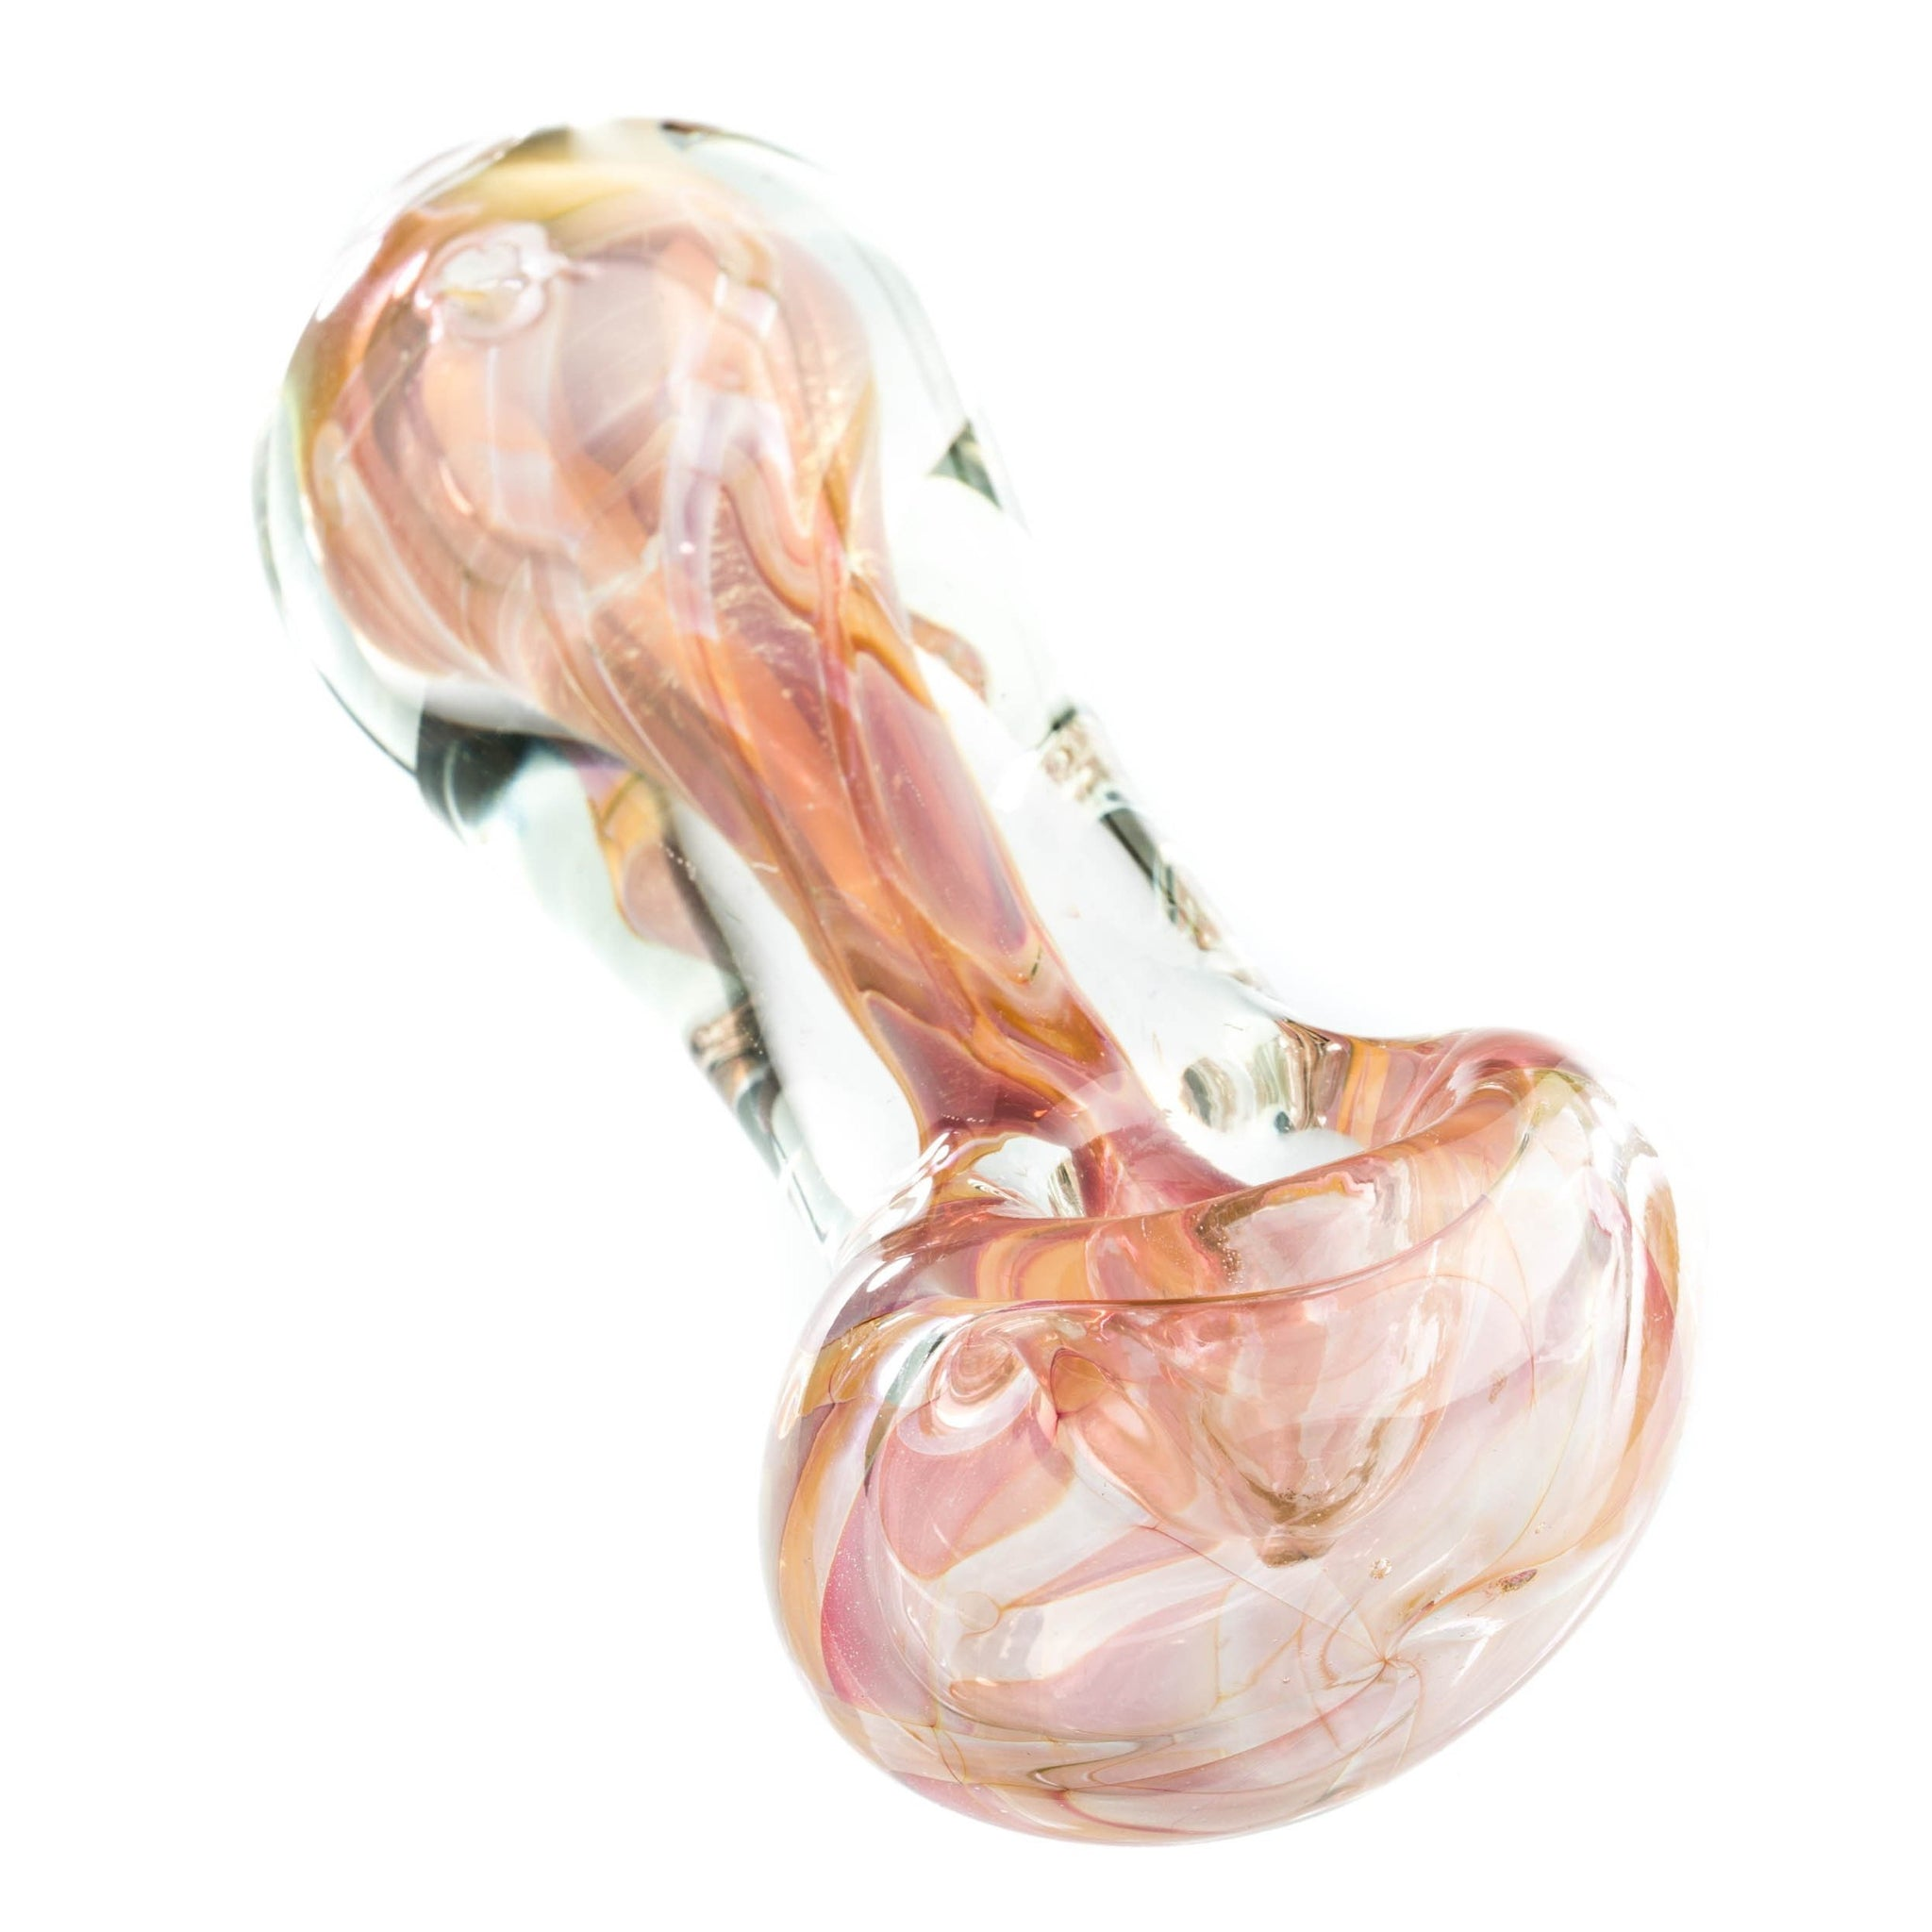 Fumed Tubing Thick Spoon Pipe